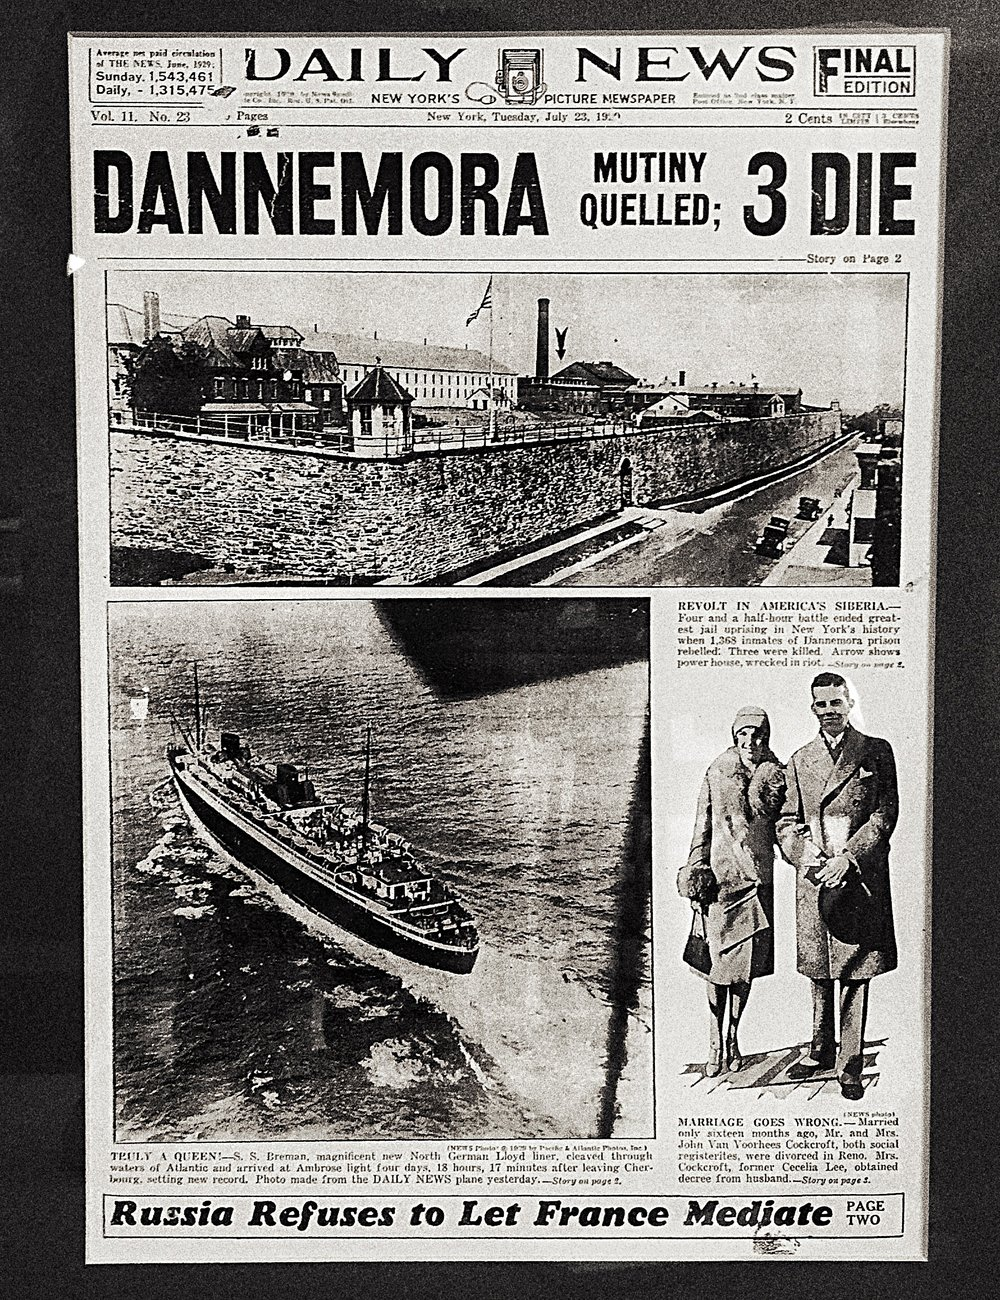 "The front page of the New York Daily News July 23, 1929, that reported of a prisoner mutiny in Dannemora. Image courtesy of historian Walter ""Pete"" Light for the Museum at the Dannemora Free Library.  (Chelsia Rose Marcius/June 17, 2015)"